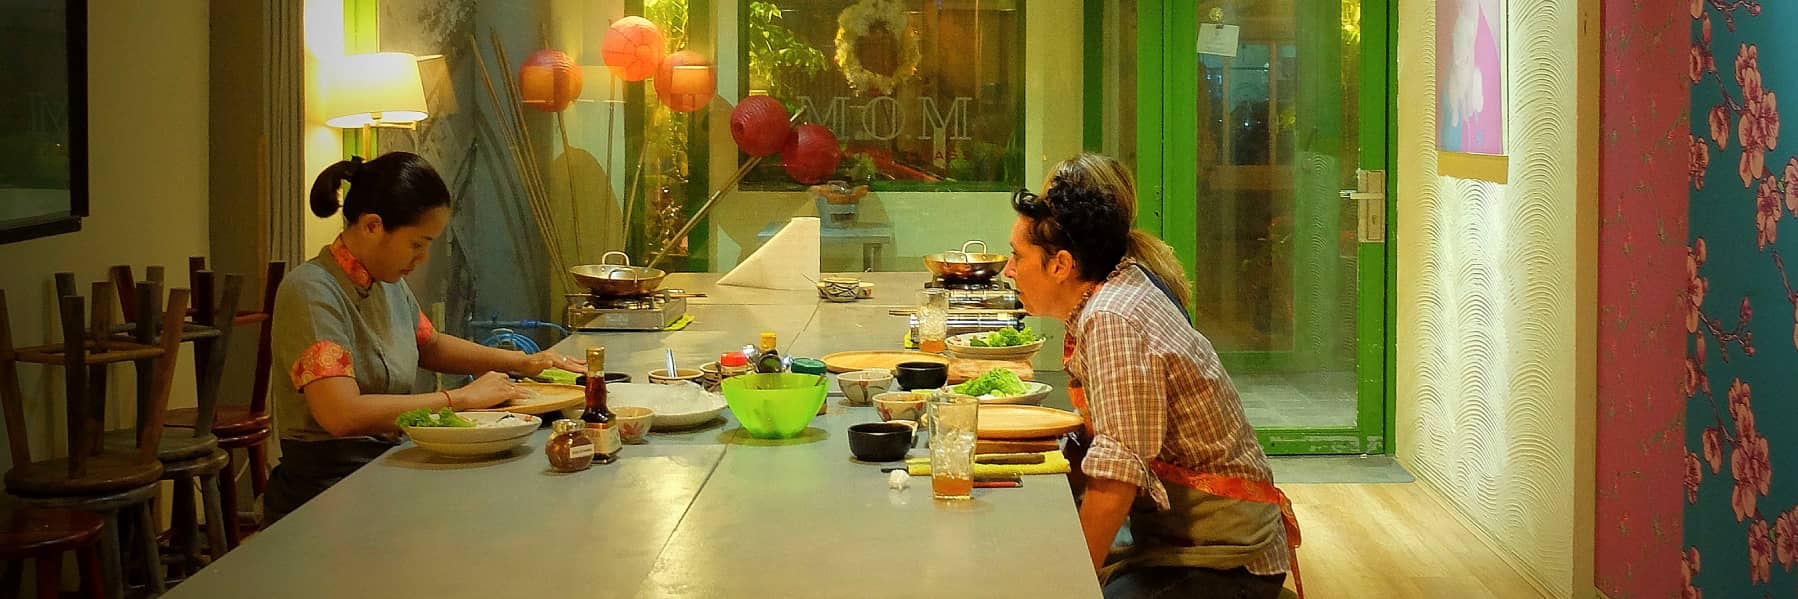 Saigon Cooking Class with Optional Market Tour – Half Day gallery